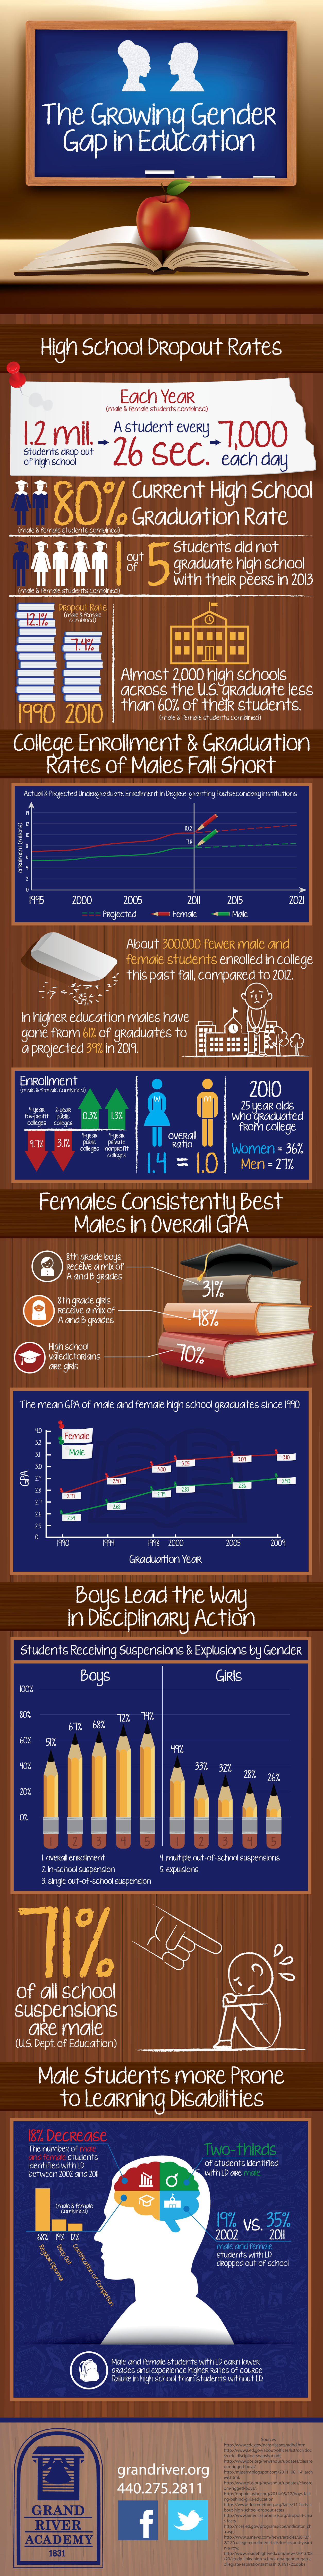 The Growing Gender Gap in Education Infographic